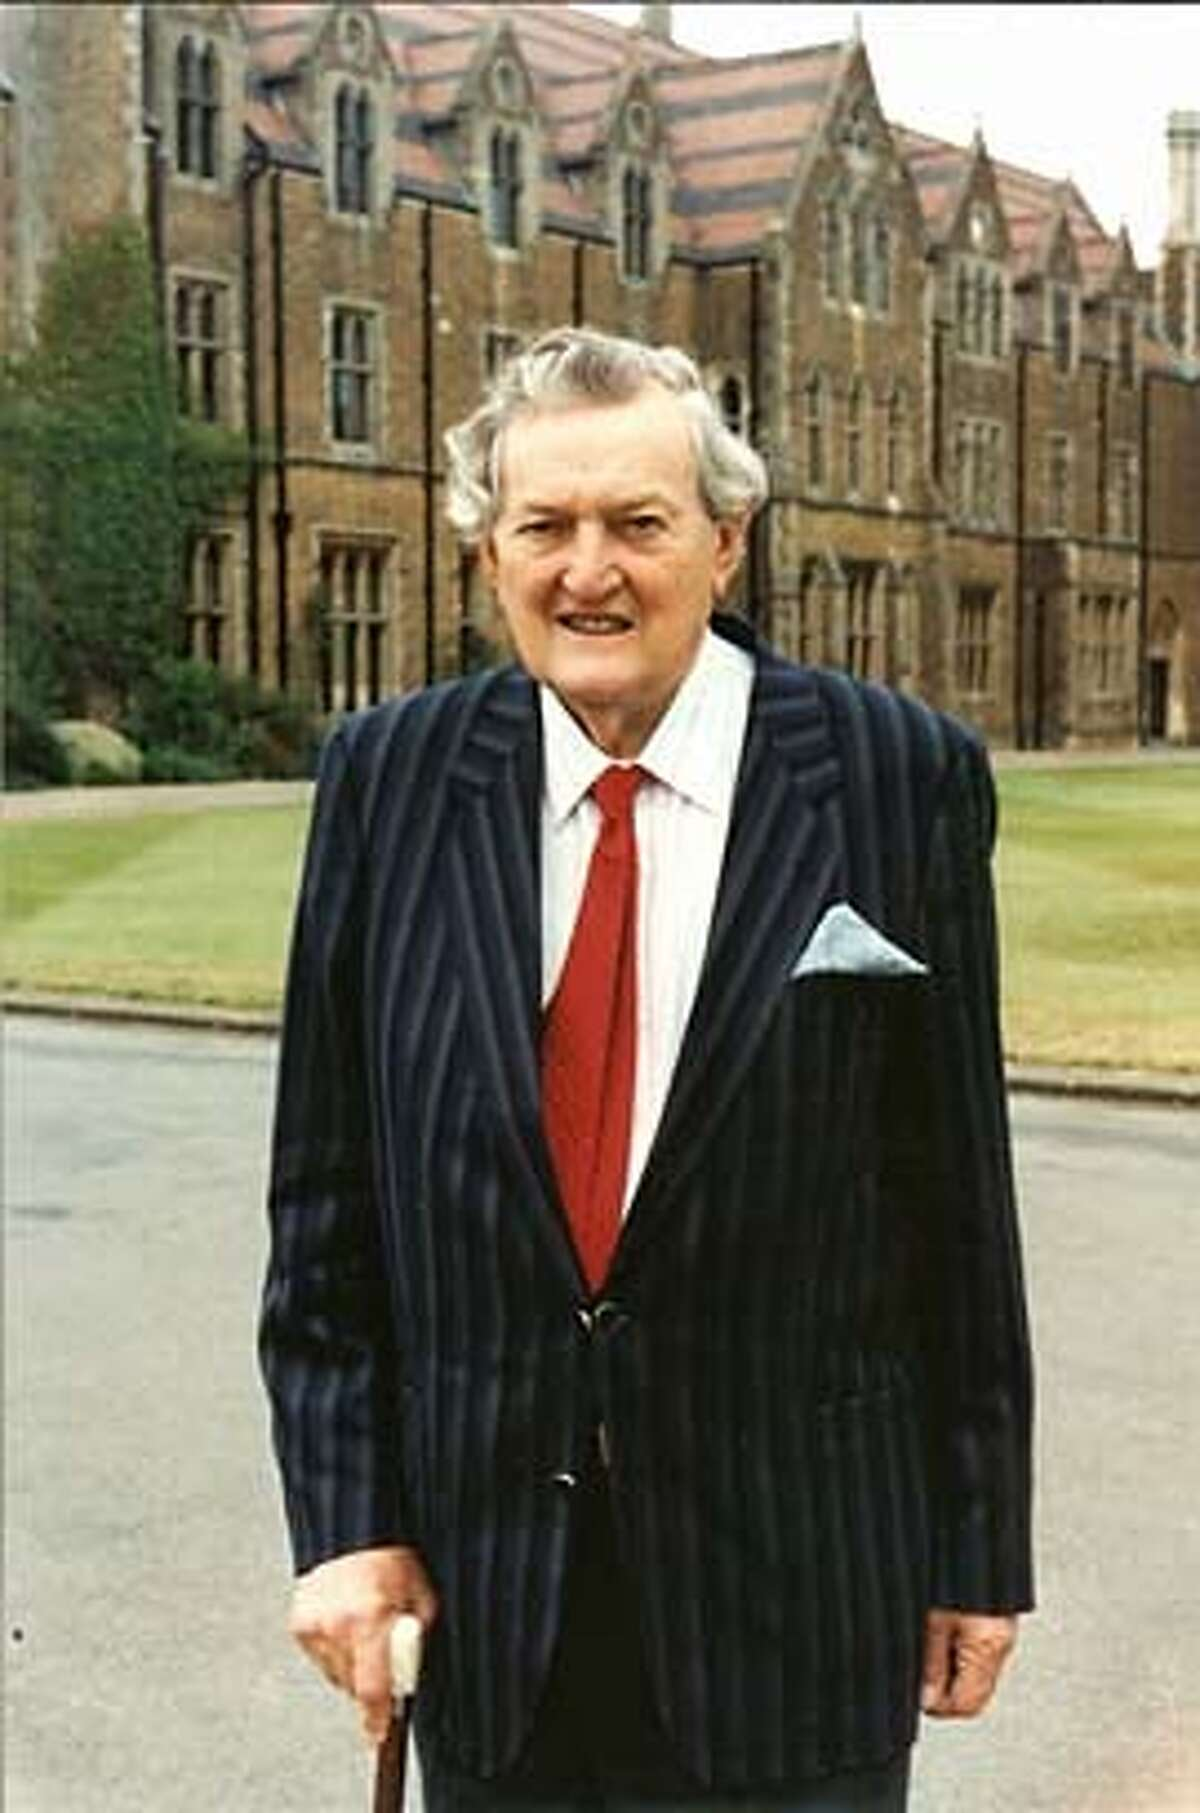 obit photo of Peter Newton, taken in 2005 outside Oxford in England.